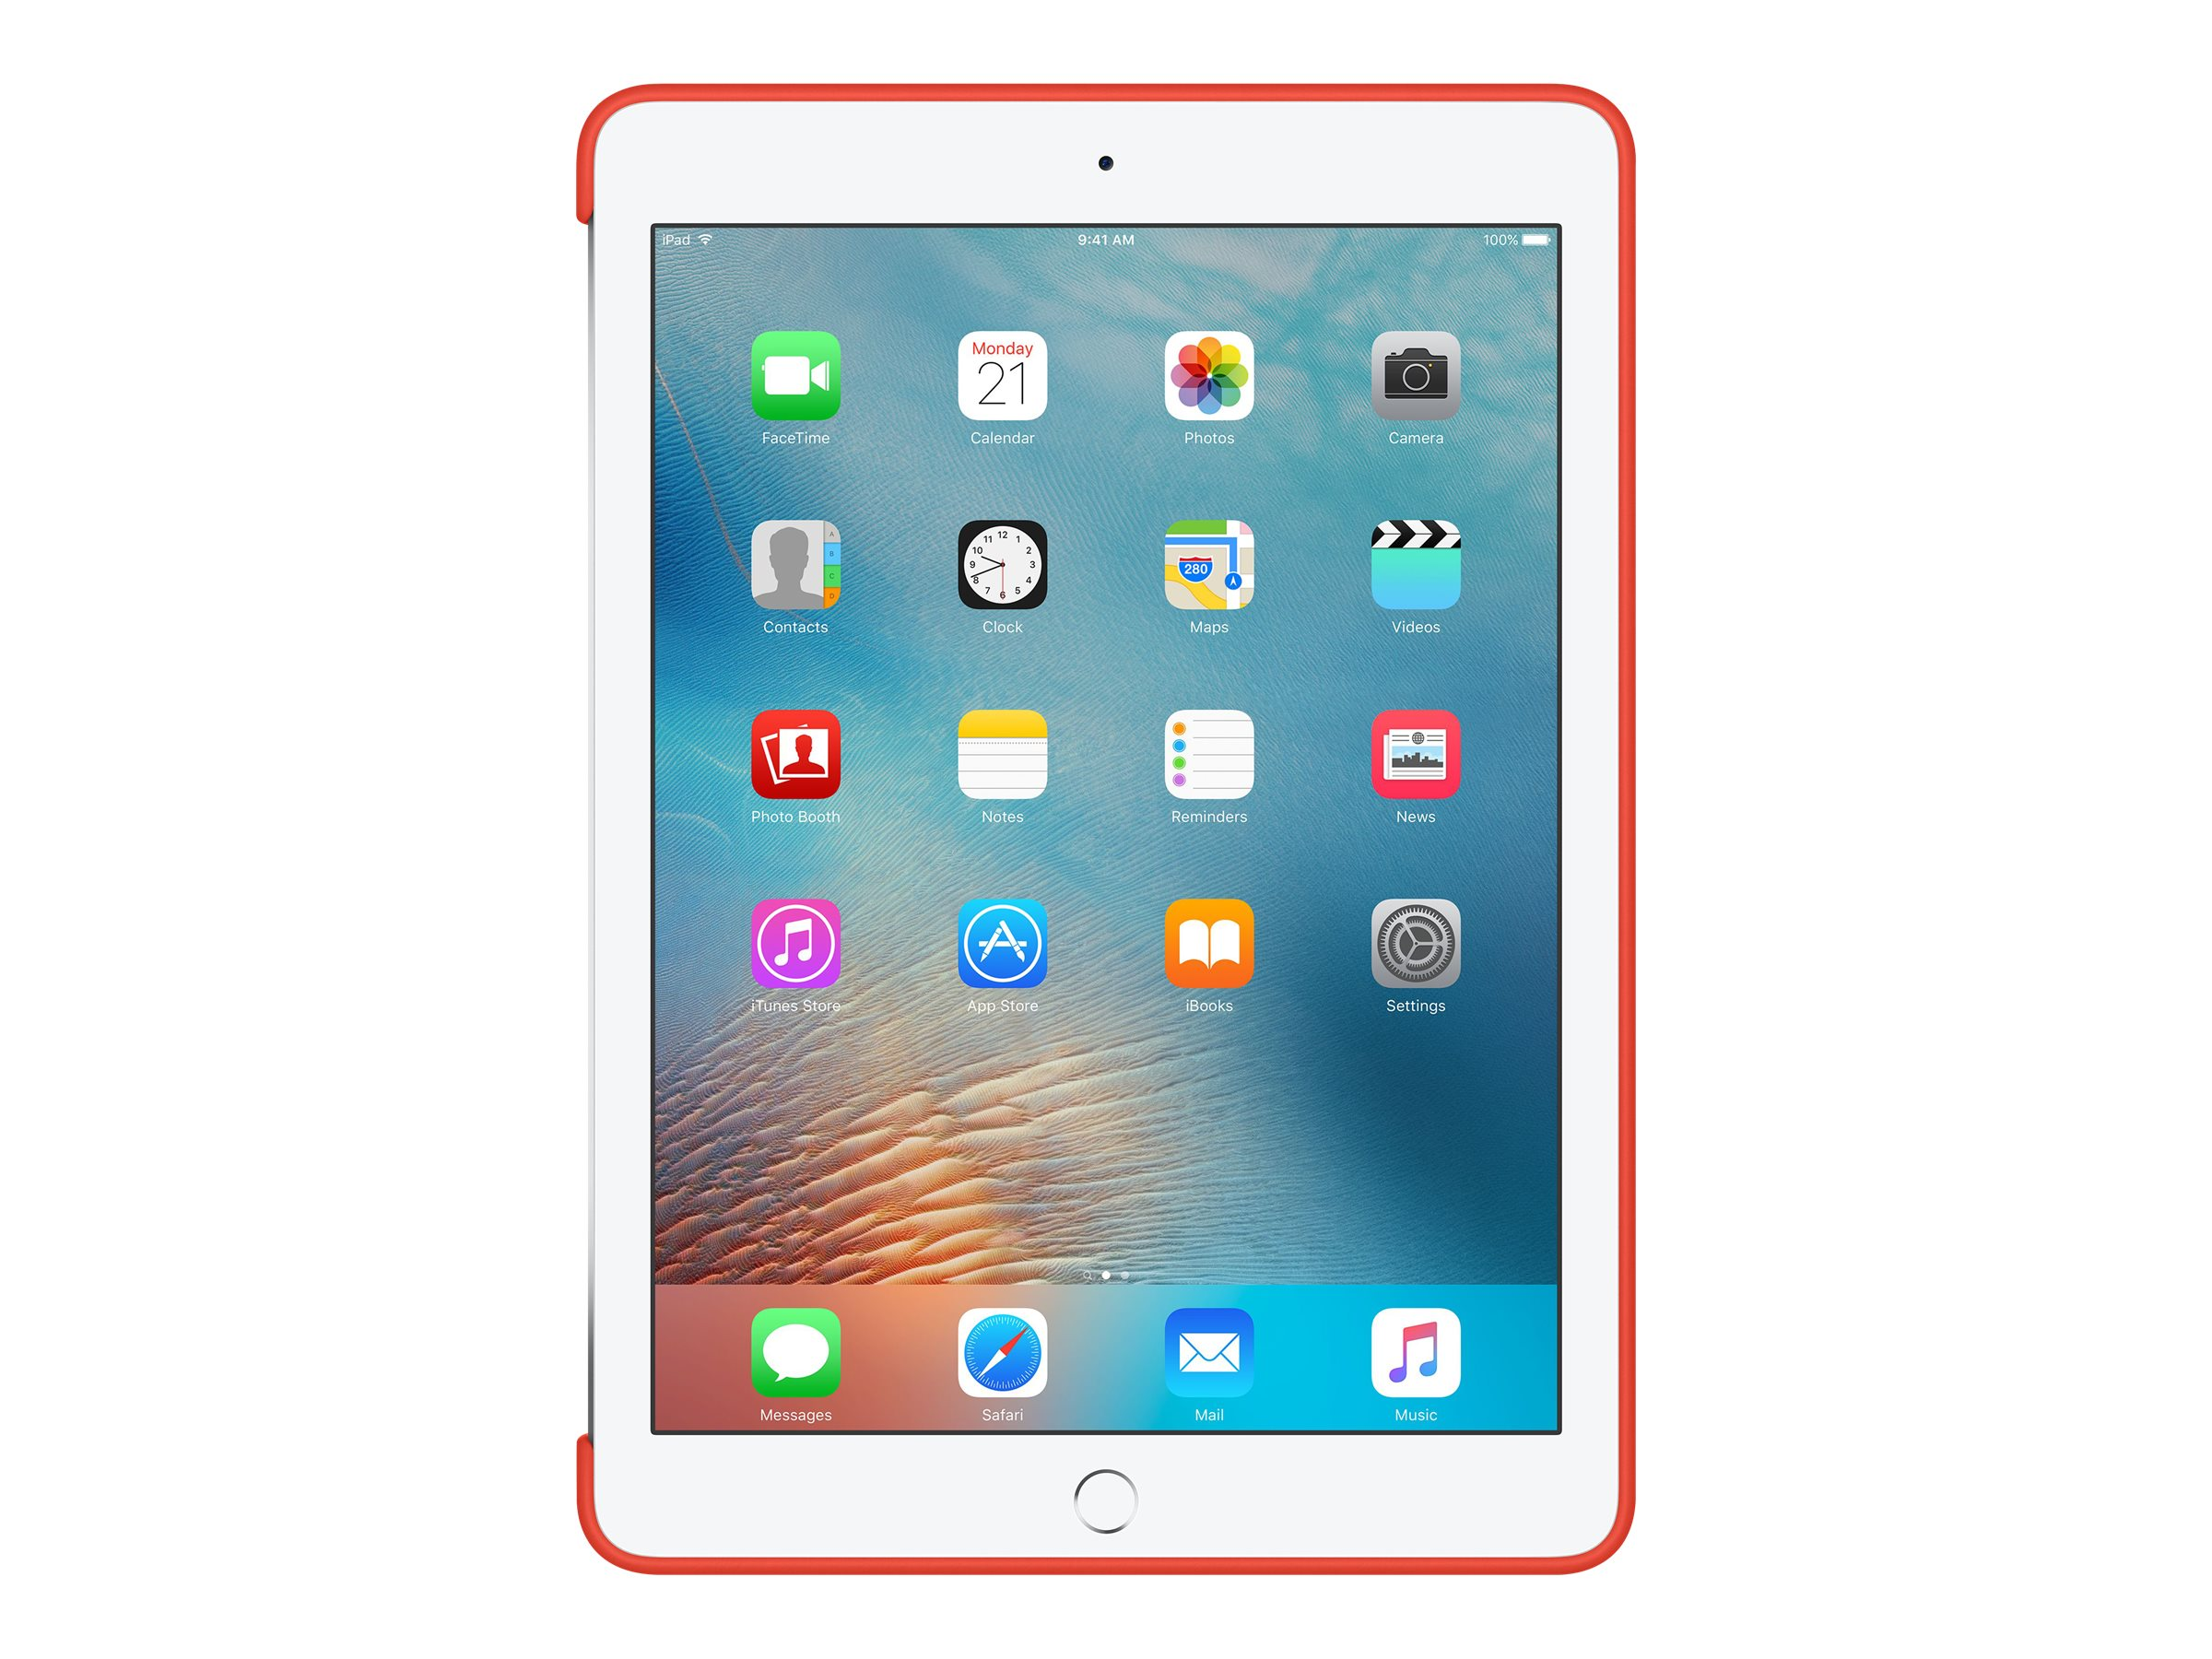 Apple Silicone Case for iPad Pro 9.7, Apricot, MM262AM/A, 31811931, Carrying Cases - Tablets & eReaders